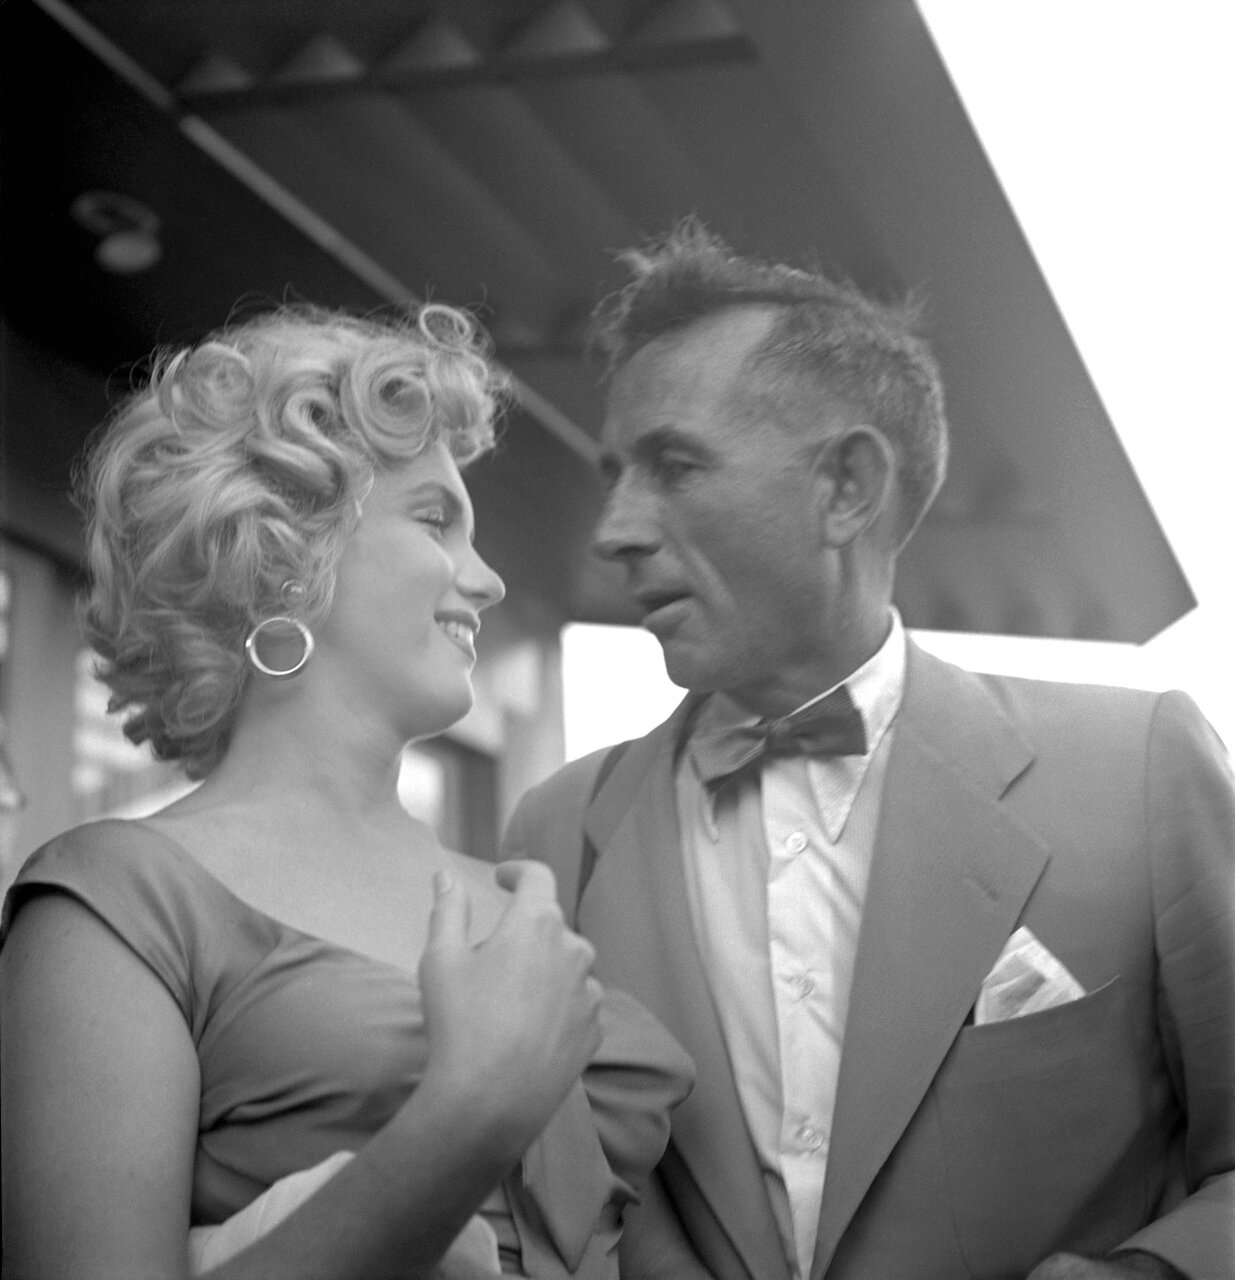 SAN DIEGO - AUGUST 1952:   Marilyn Monroe and photographer Earl Theisen chat at a party celebrating the release of Ray Anthony's song 'Marilyn' in August 1952 in Los Angeles, California.  (Photo by Earl Theisen/Getty Images)